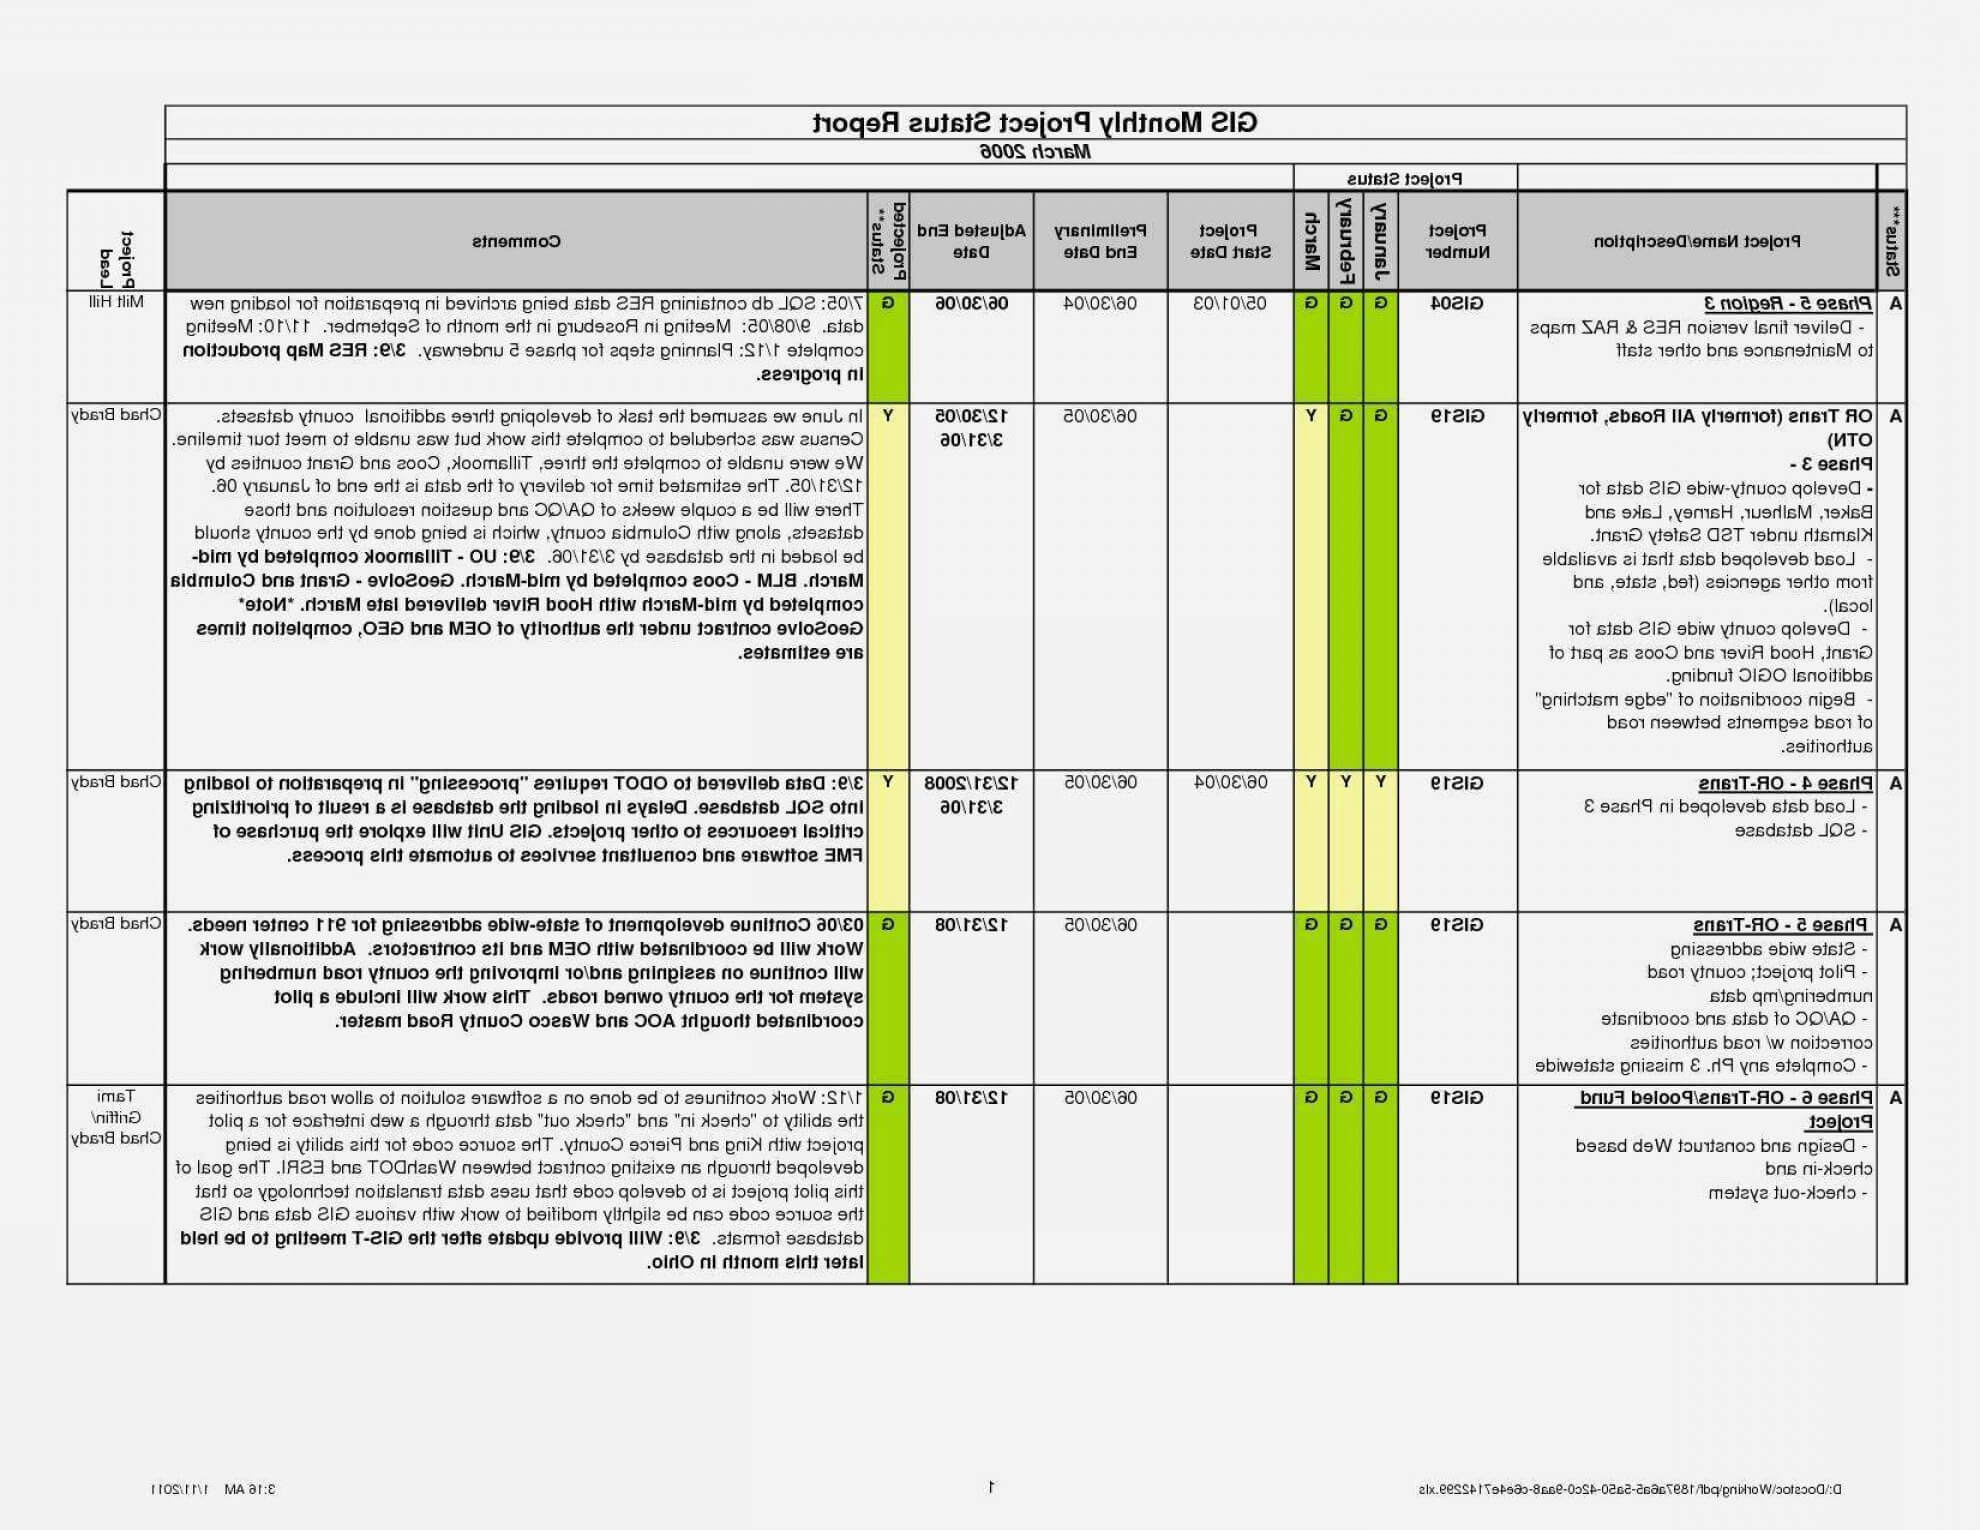 004 Project Management Report Template Excel And Status regarding Project Manager Status Report Template